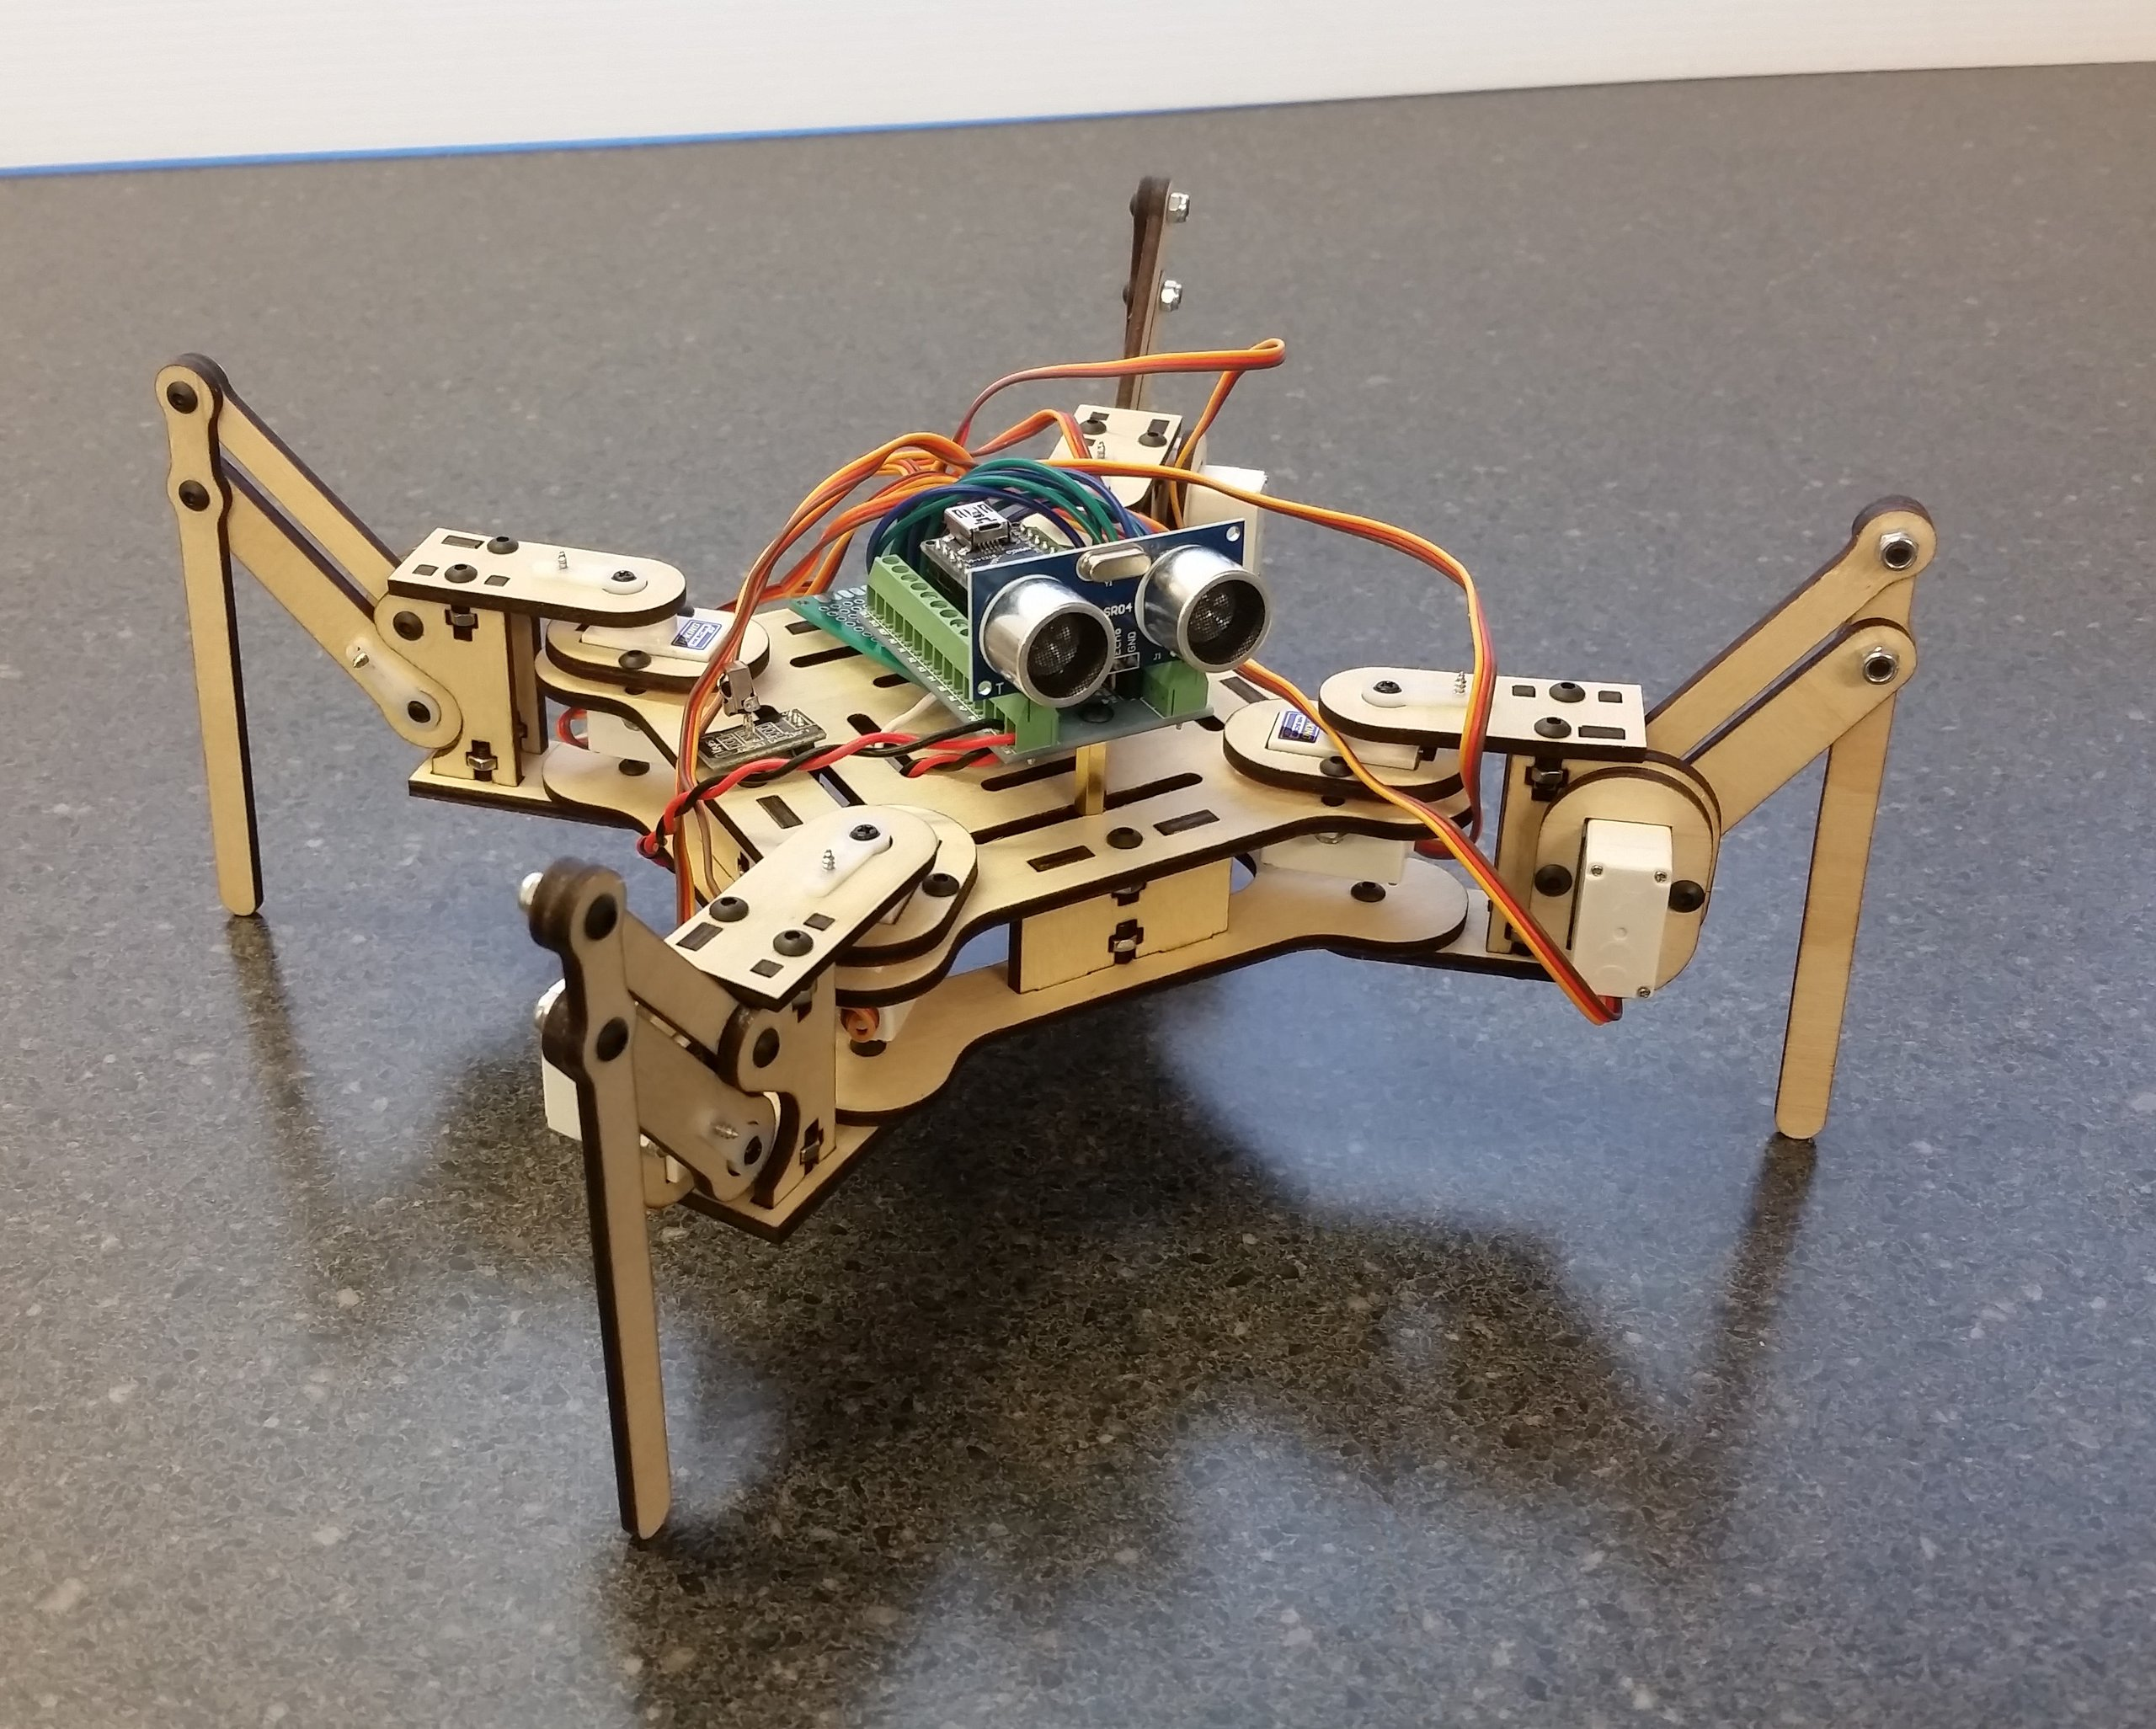 Meped quadruped robot kit from spiercetech on tindie